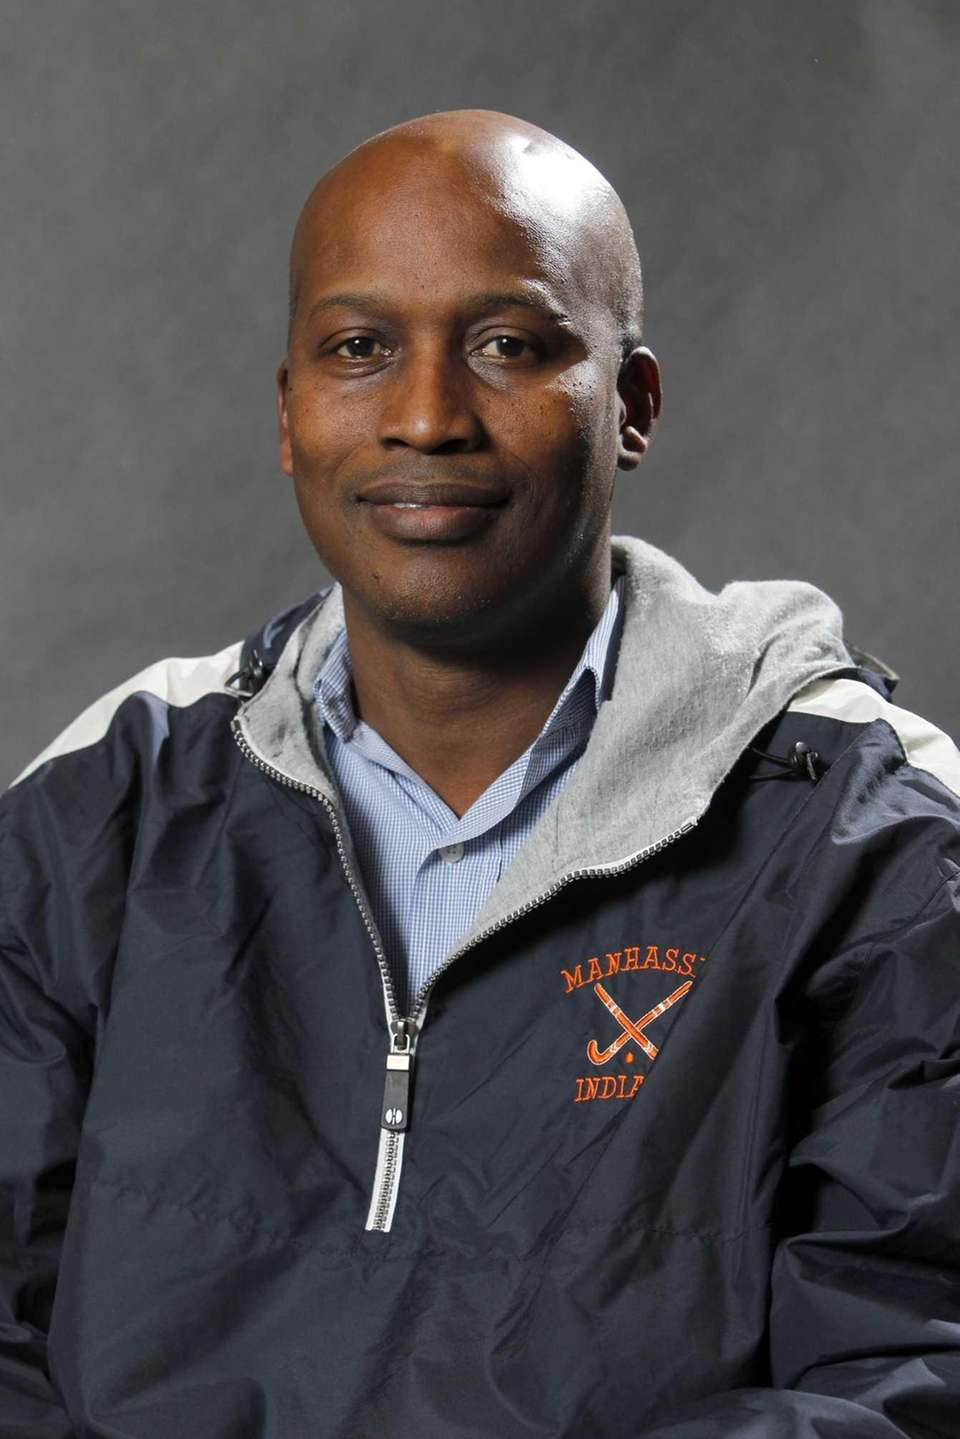 STEVE SPROUL Manhasset Nassau field hockey coach of